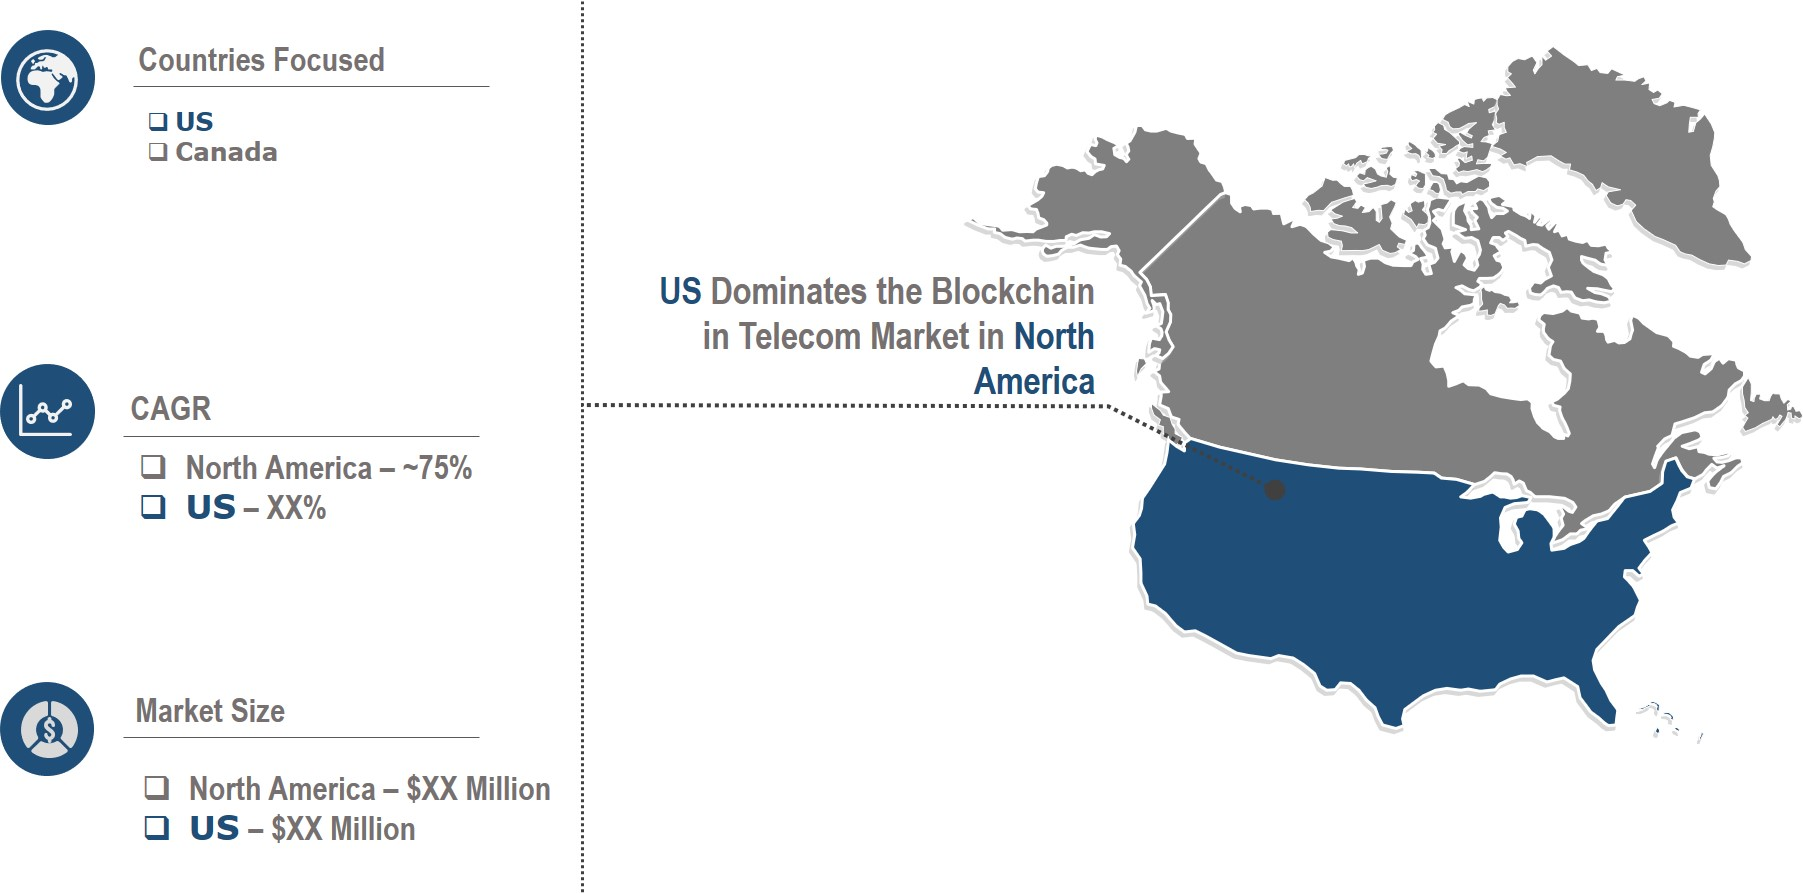 North America Blockchain in Telecom Market